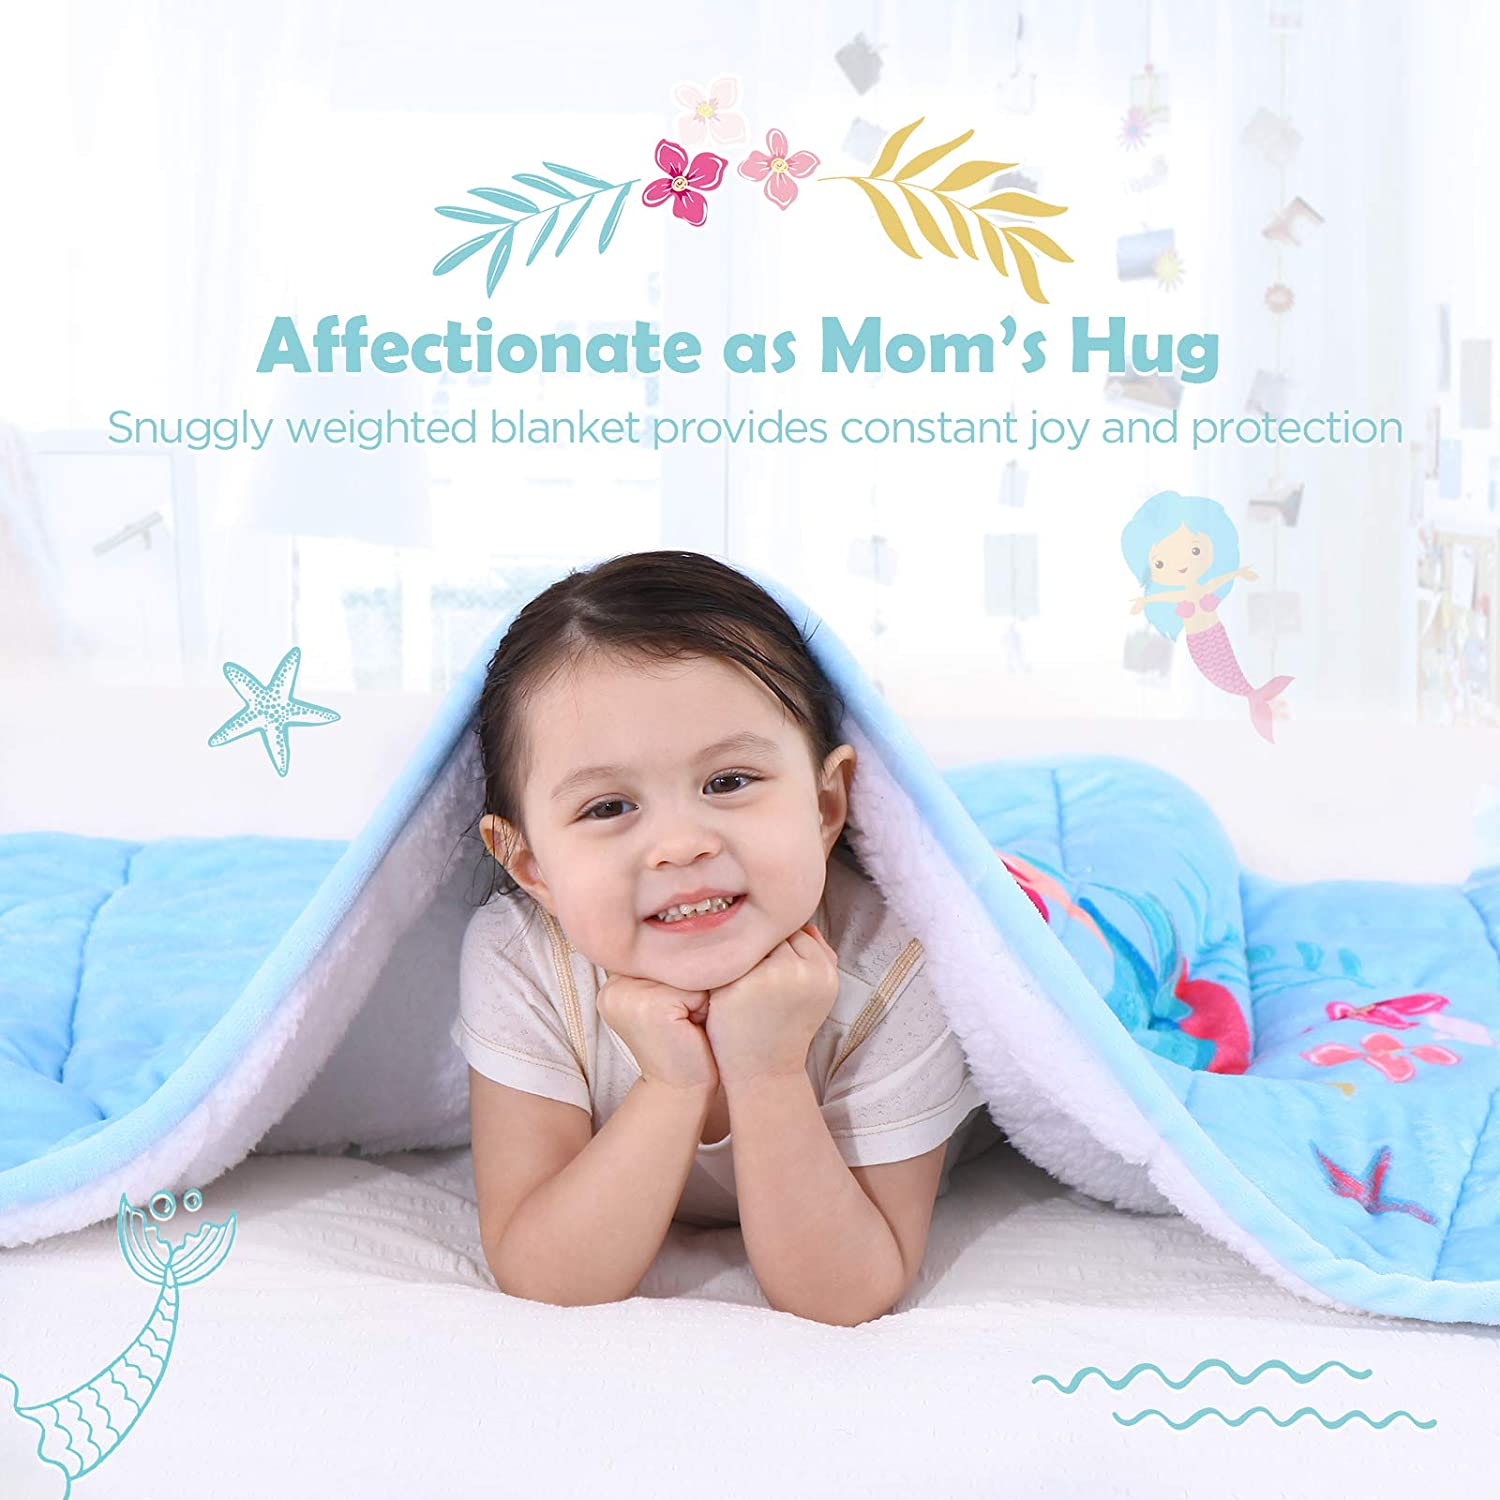 36 x 48 inches Calming Blanket to Help with Peaceful Sleep Topblan Weighted Blanket for Children 3lbs Kids Sherpa Blanket Featuring Whimsical Patterns Pink Mermaid